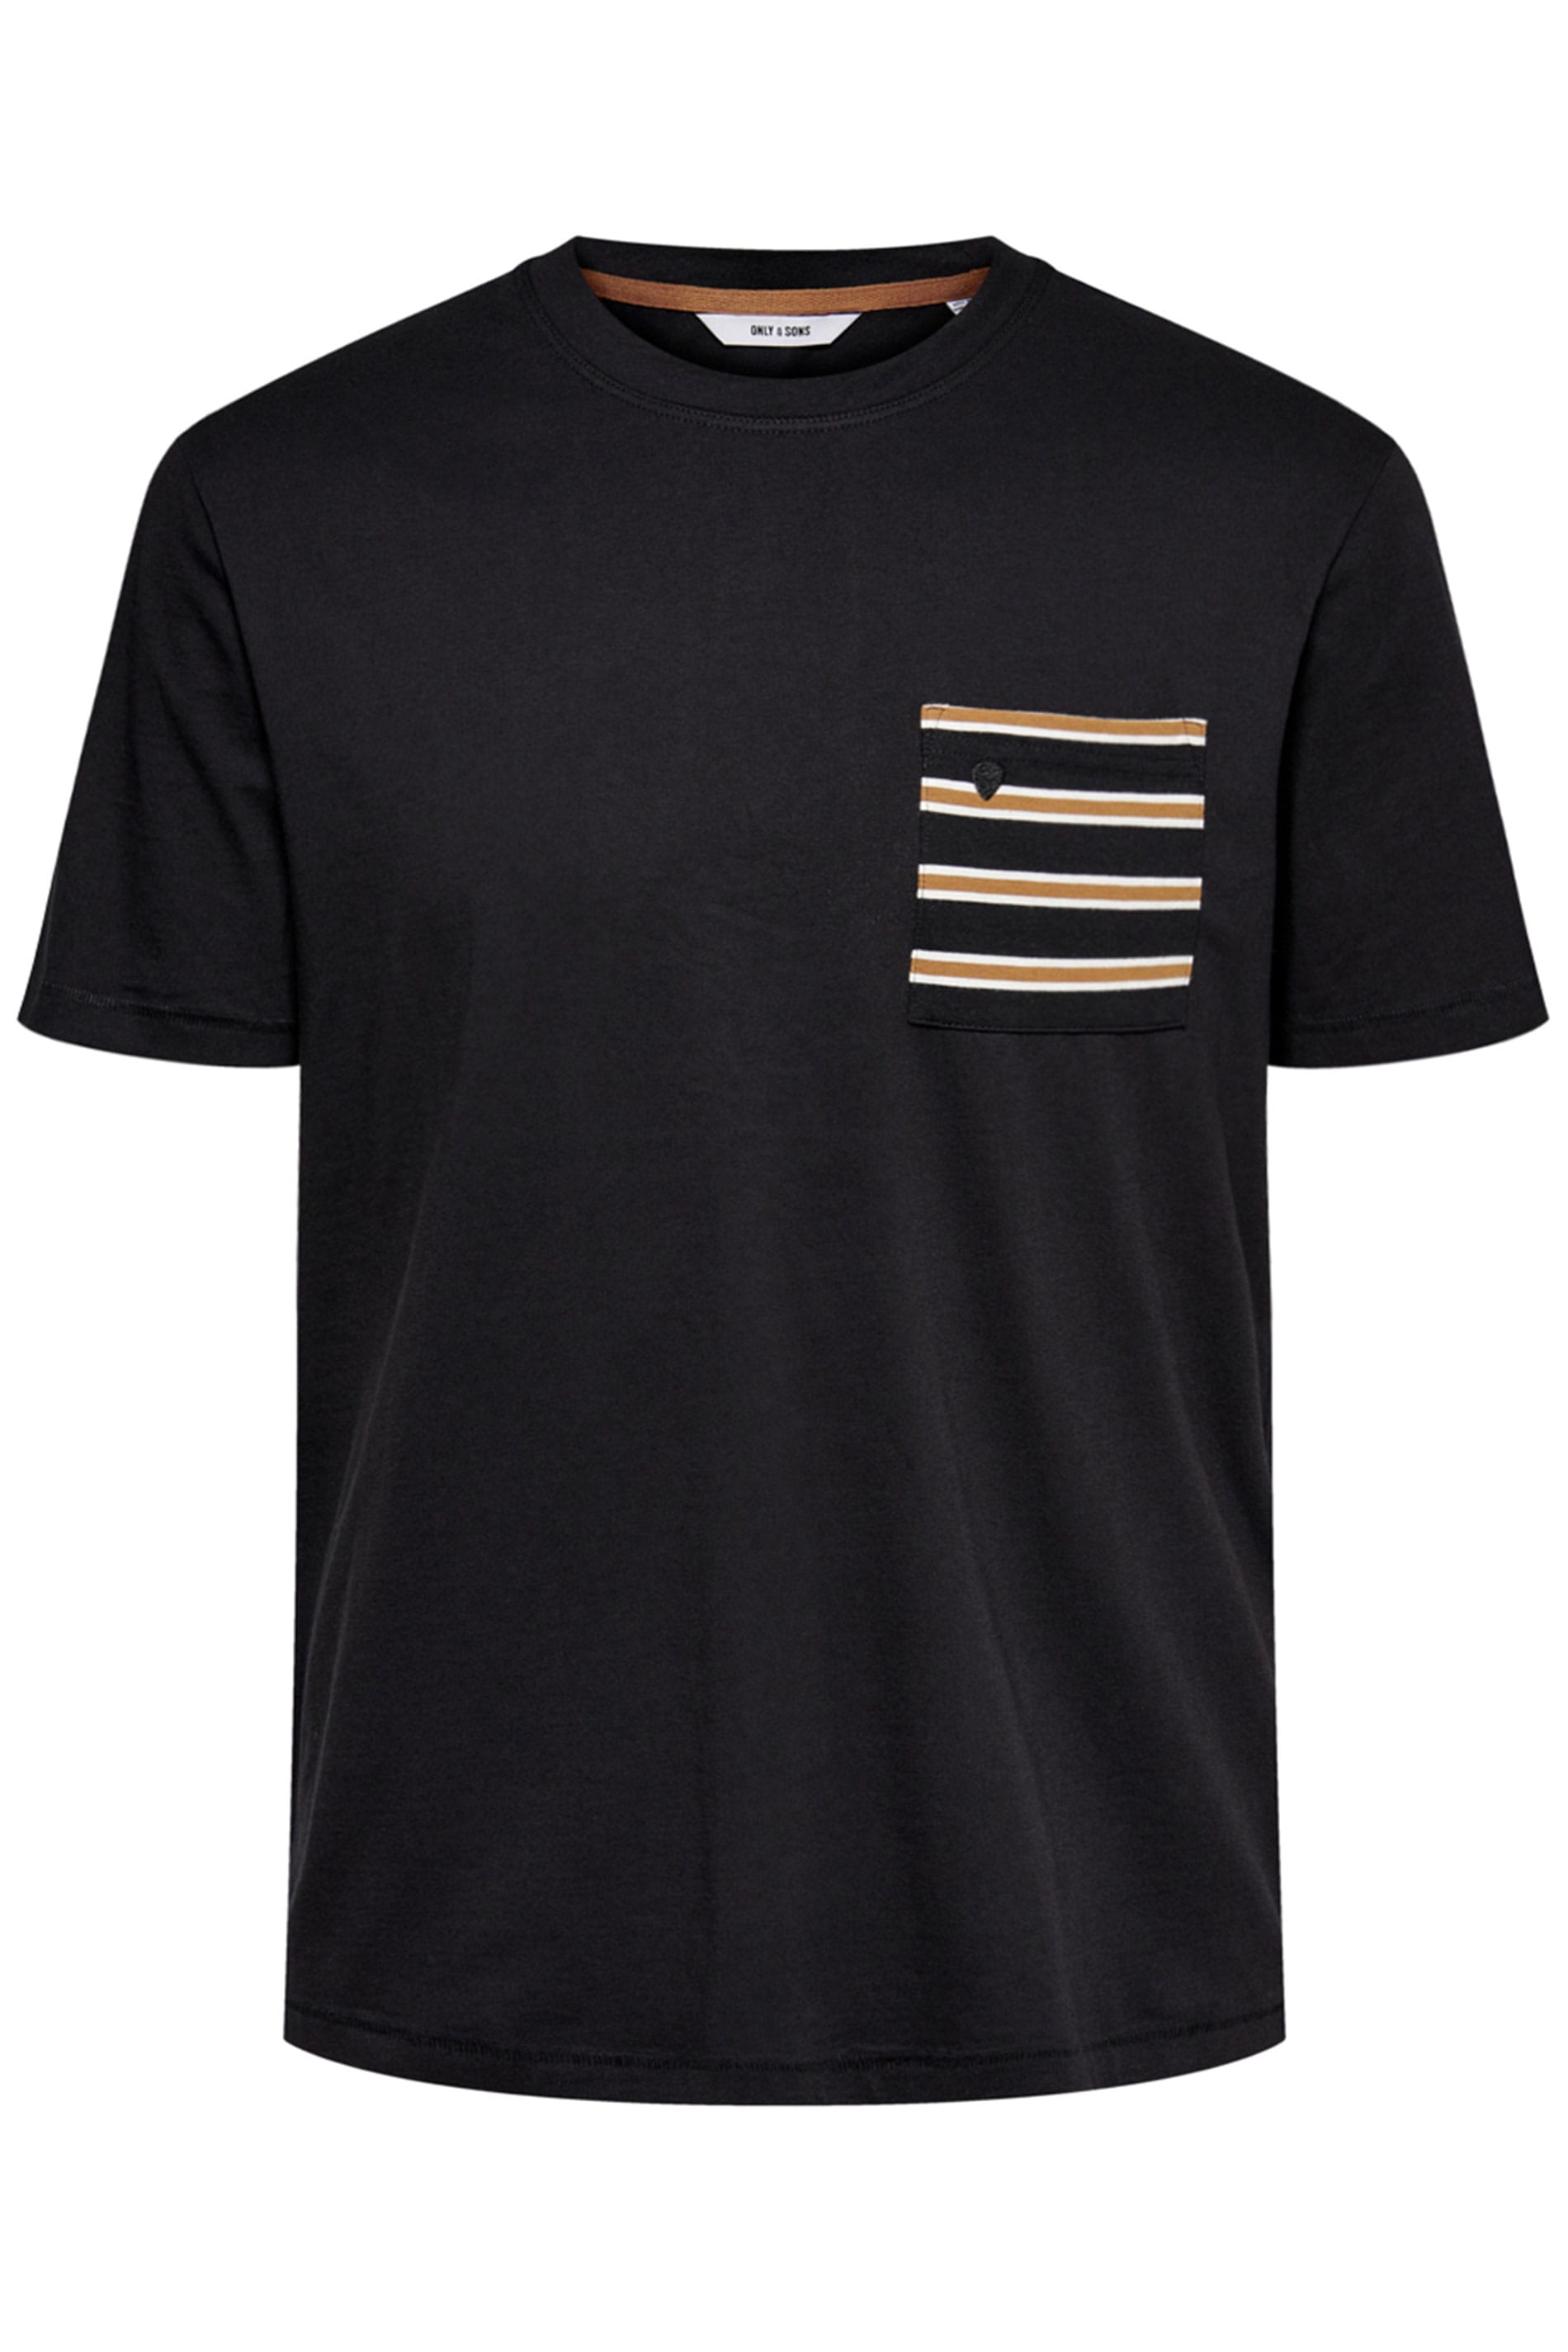 ONLY & SONS Black Pocket T-Shirt